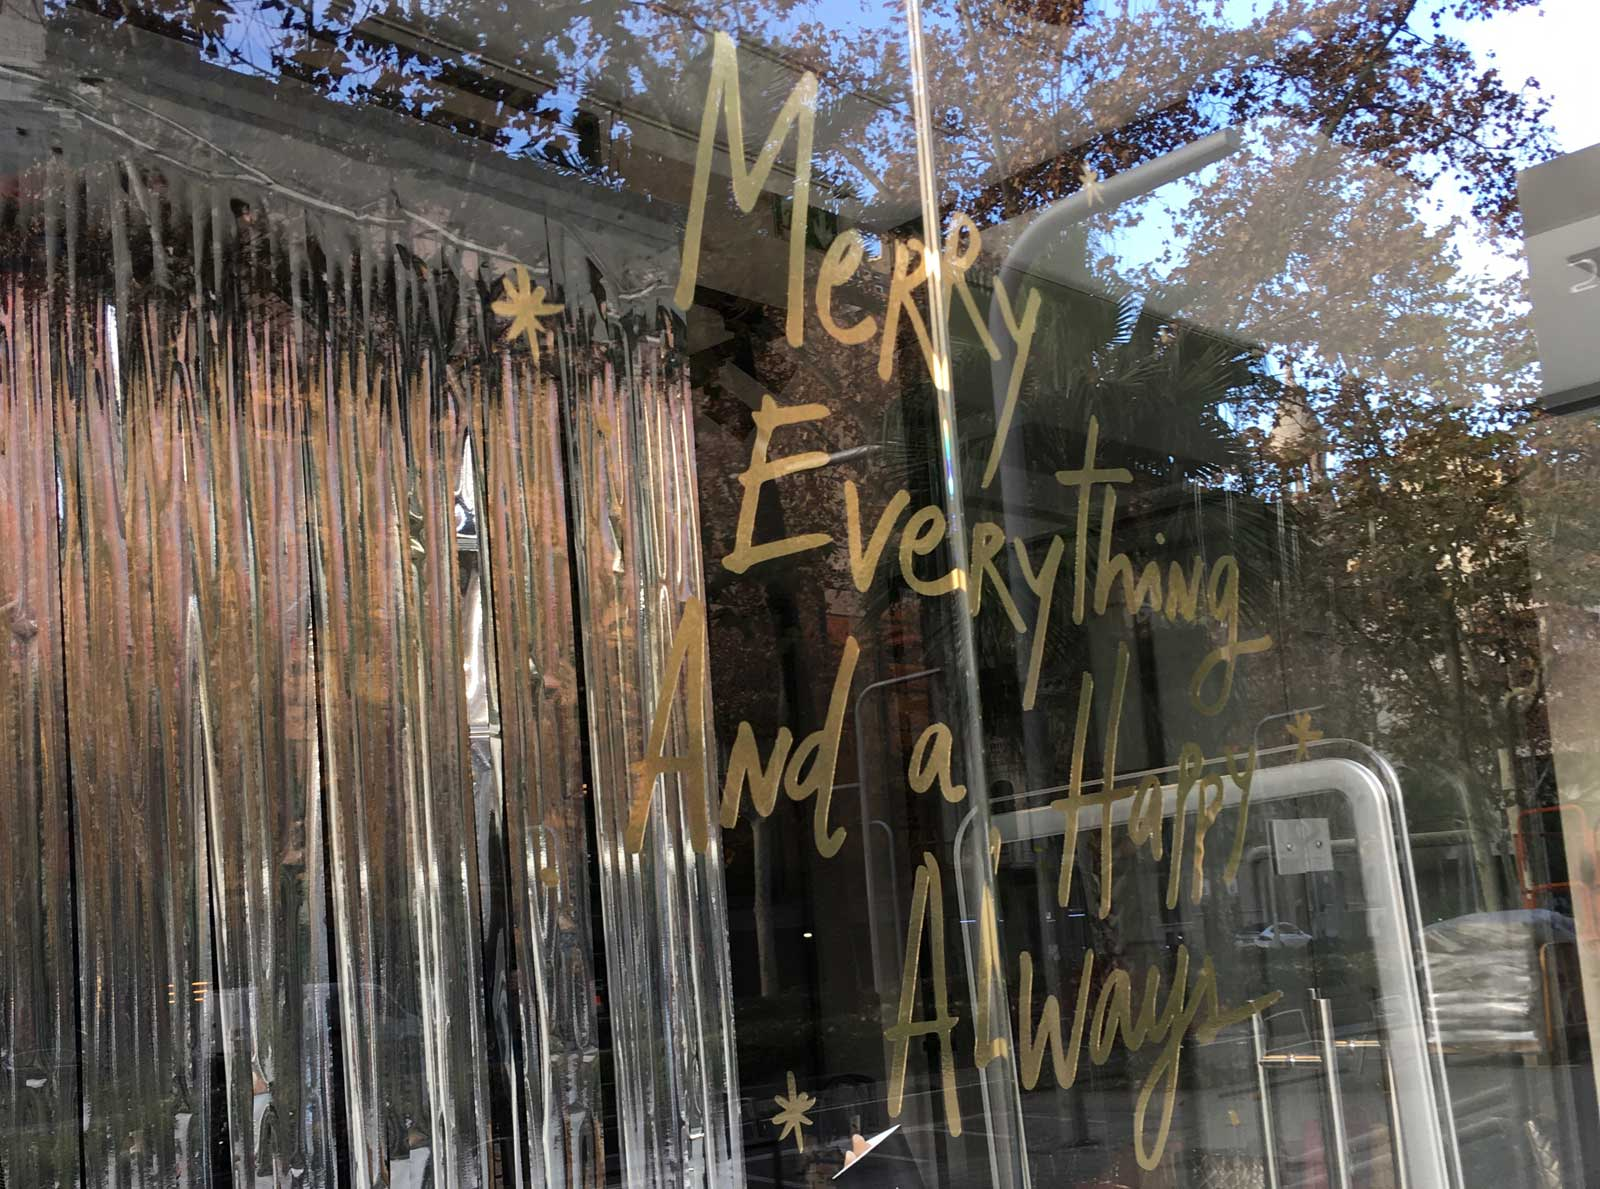 Merry Everything & a Happy Always (Diagonal, BCN)